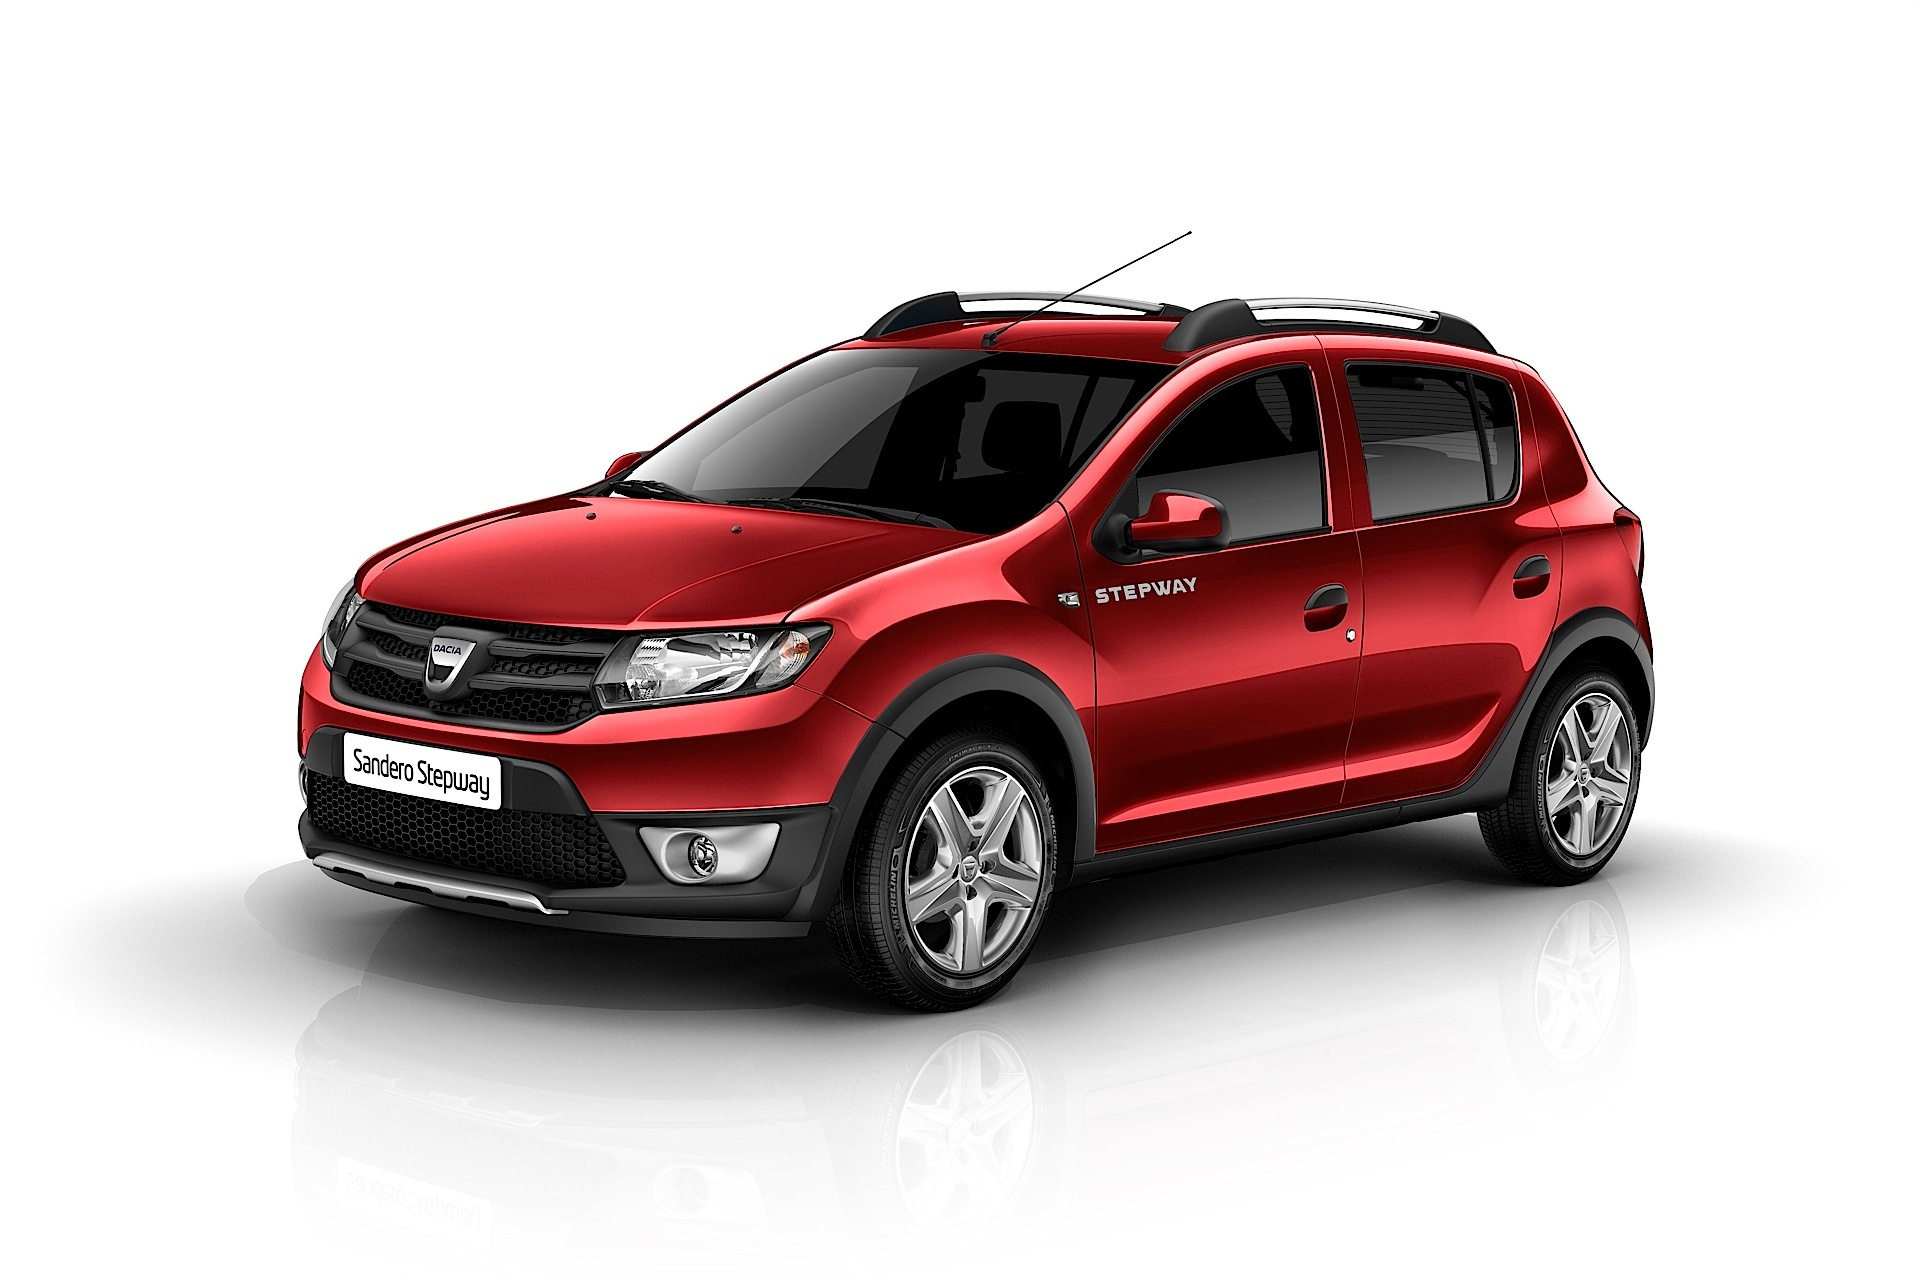 dacia sandero stepway 2 2012 2013 2014 2015 2016. Black Bedroom Furniture Sets. Home Design Ideas